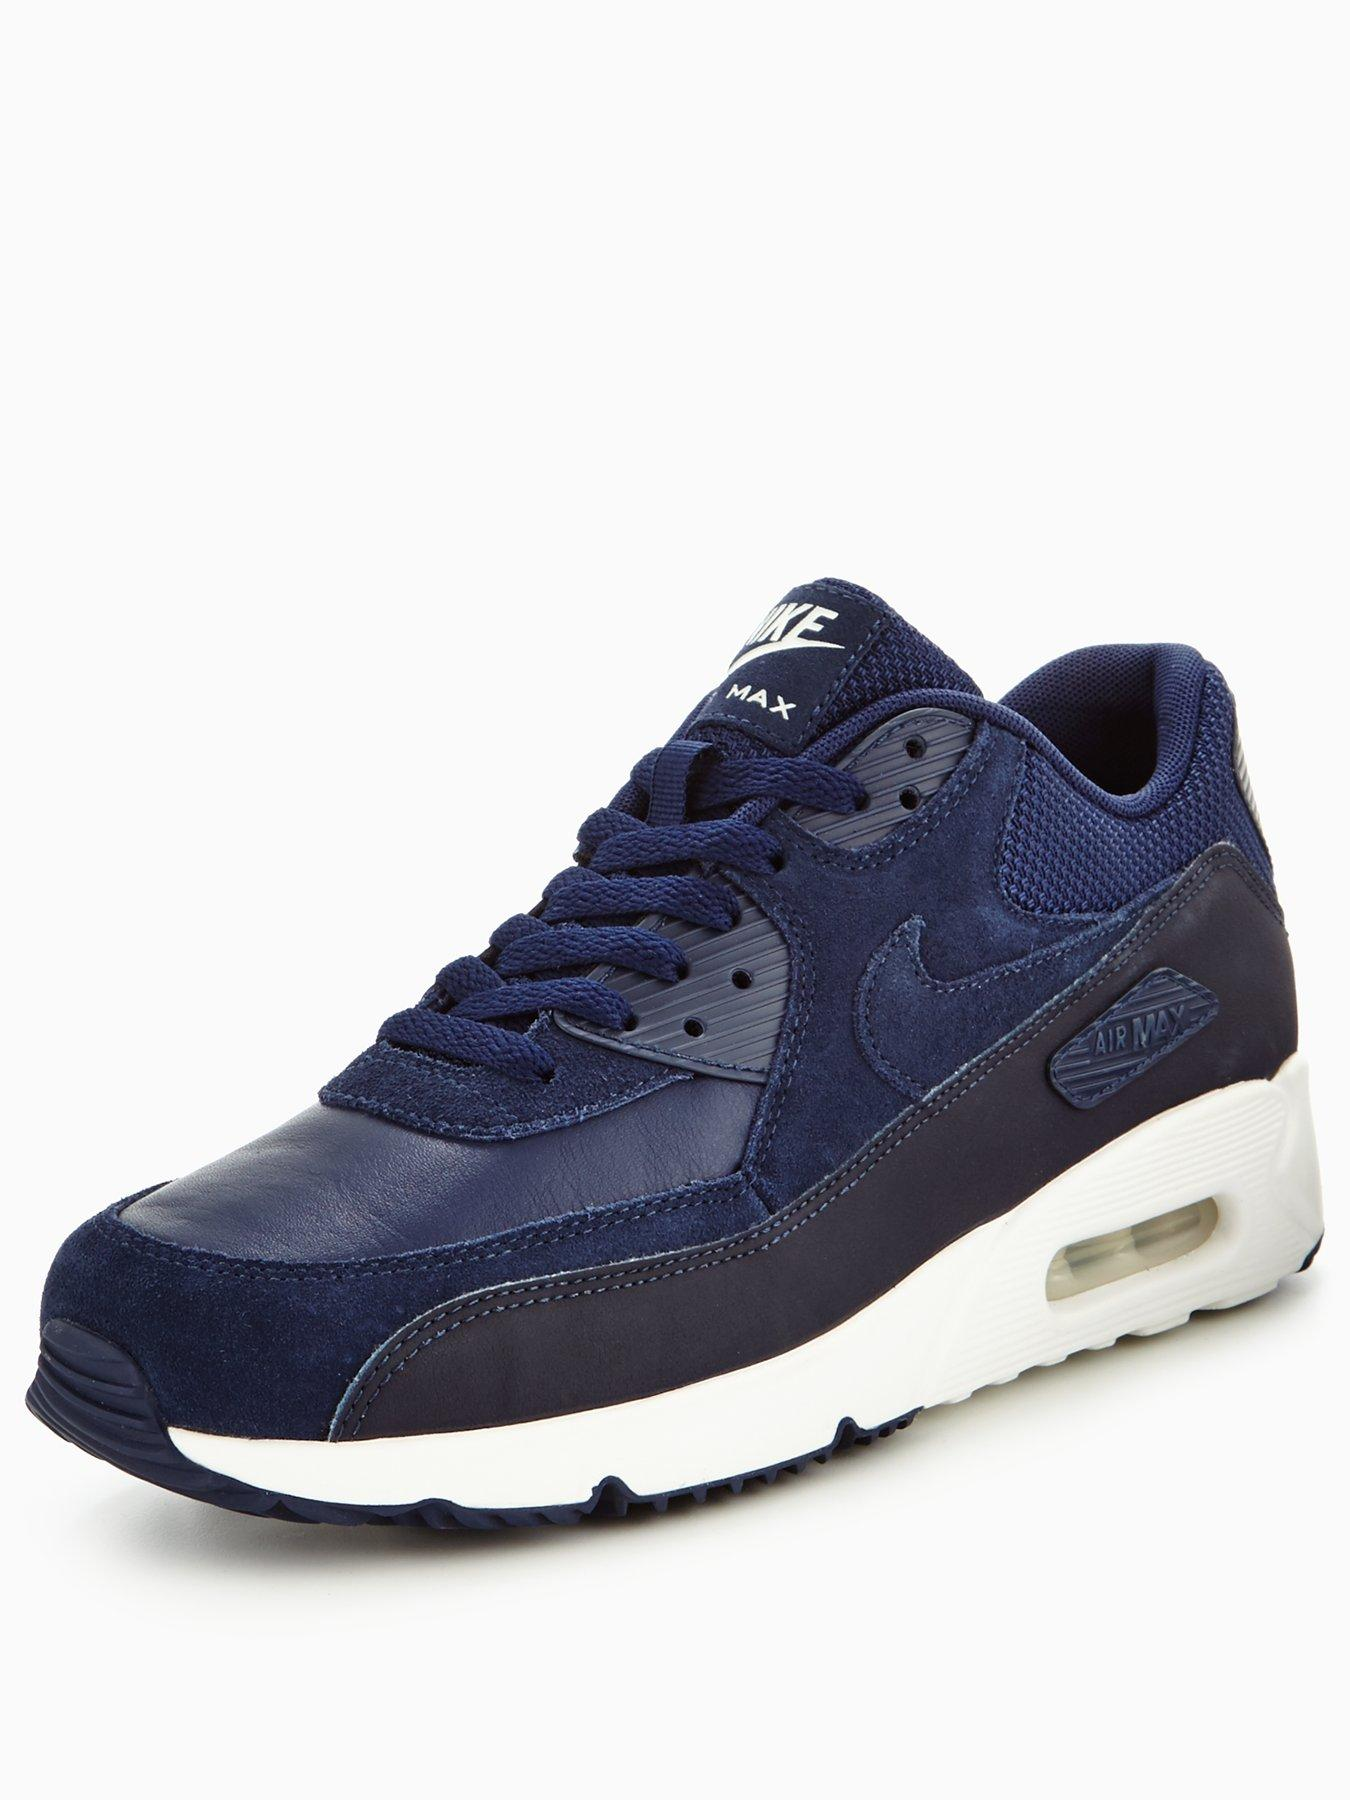 Nike Air Max 90 Ultra 2 0 Leather 1600190765 Men's Shoes Nike Trainers